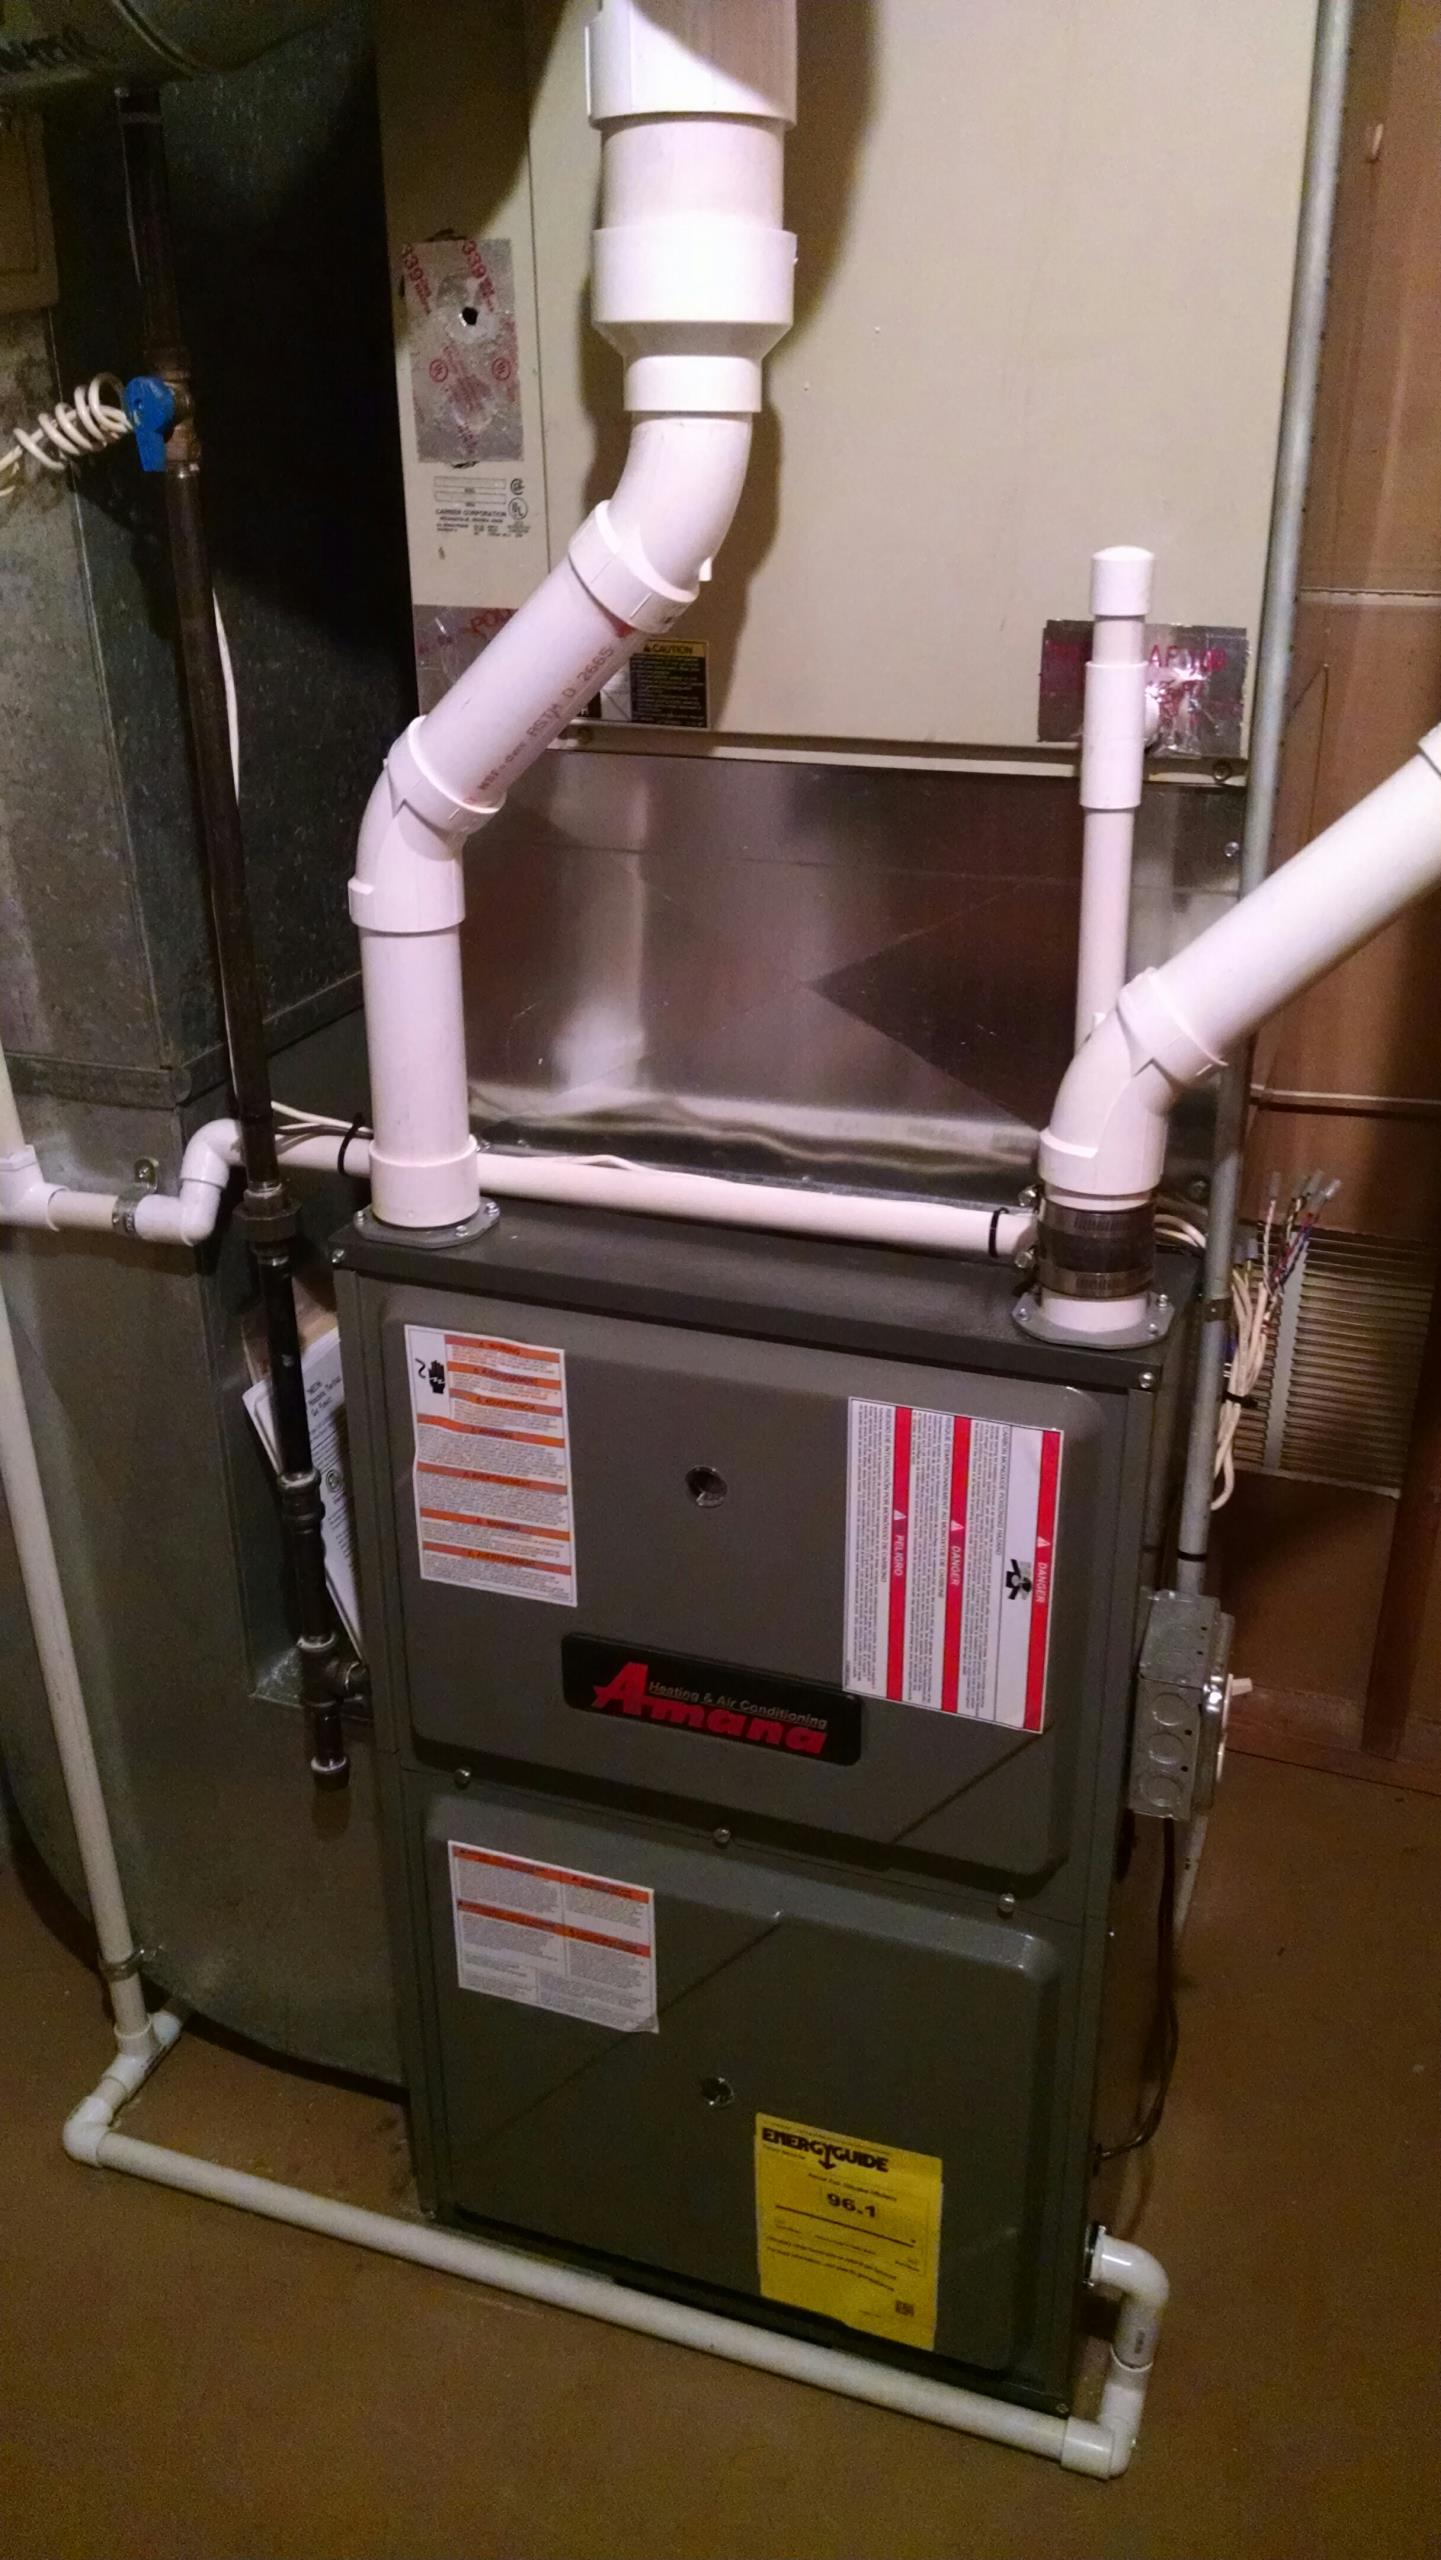 #B7142F Furnace Repair And Air Conditioning Repair In Fort Gratiot  Recommended 5077 Luxaire Furnace Repair pics with 1441x2560 px on helpvideos.info - Air Conditioners, Air Coolers and more